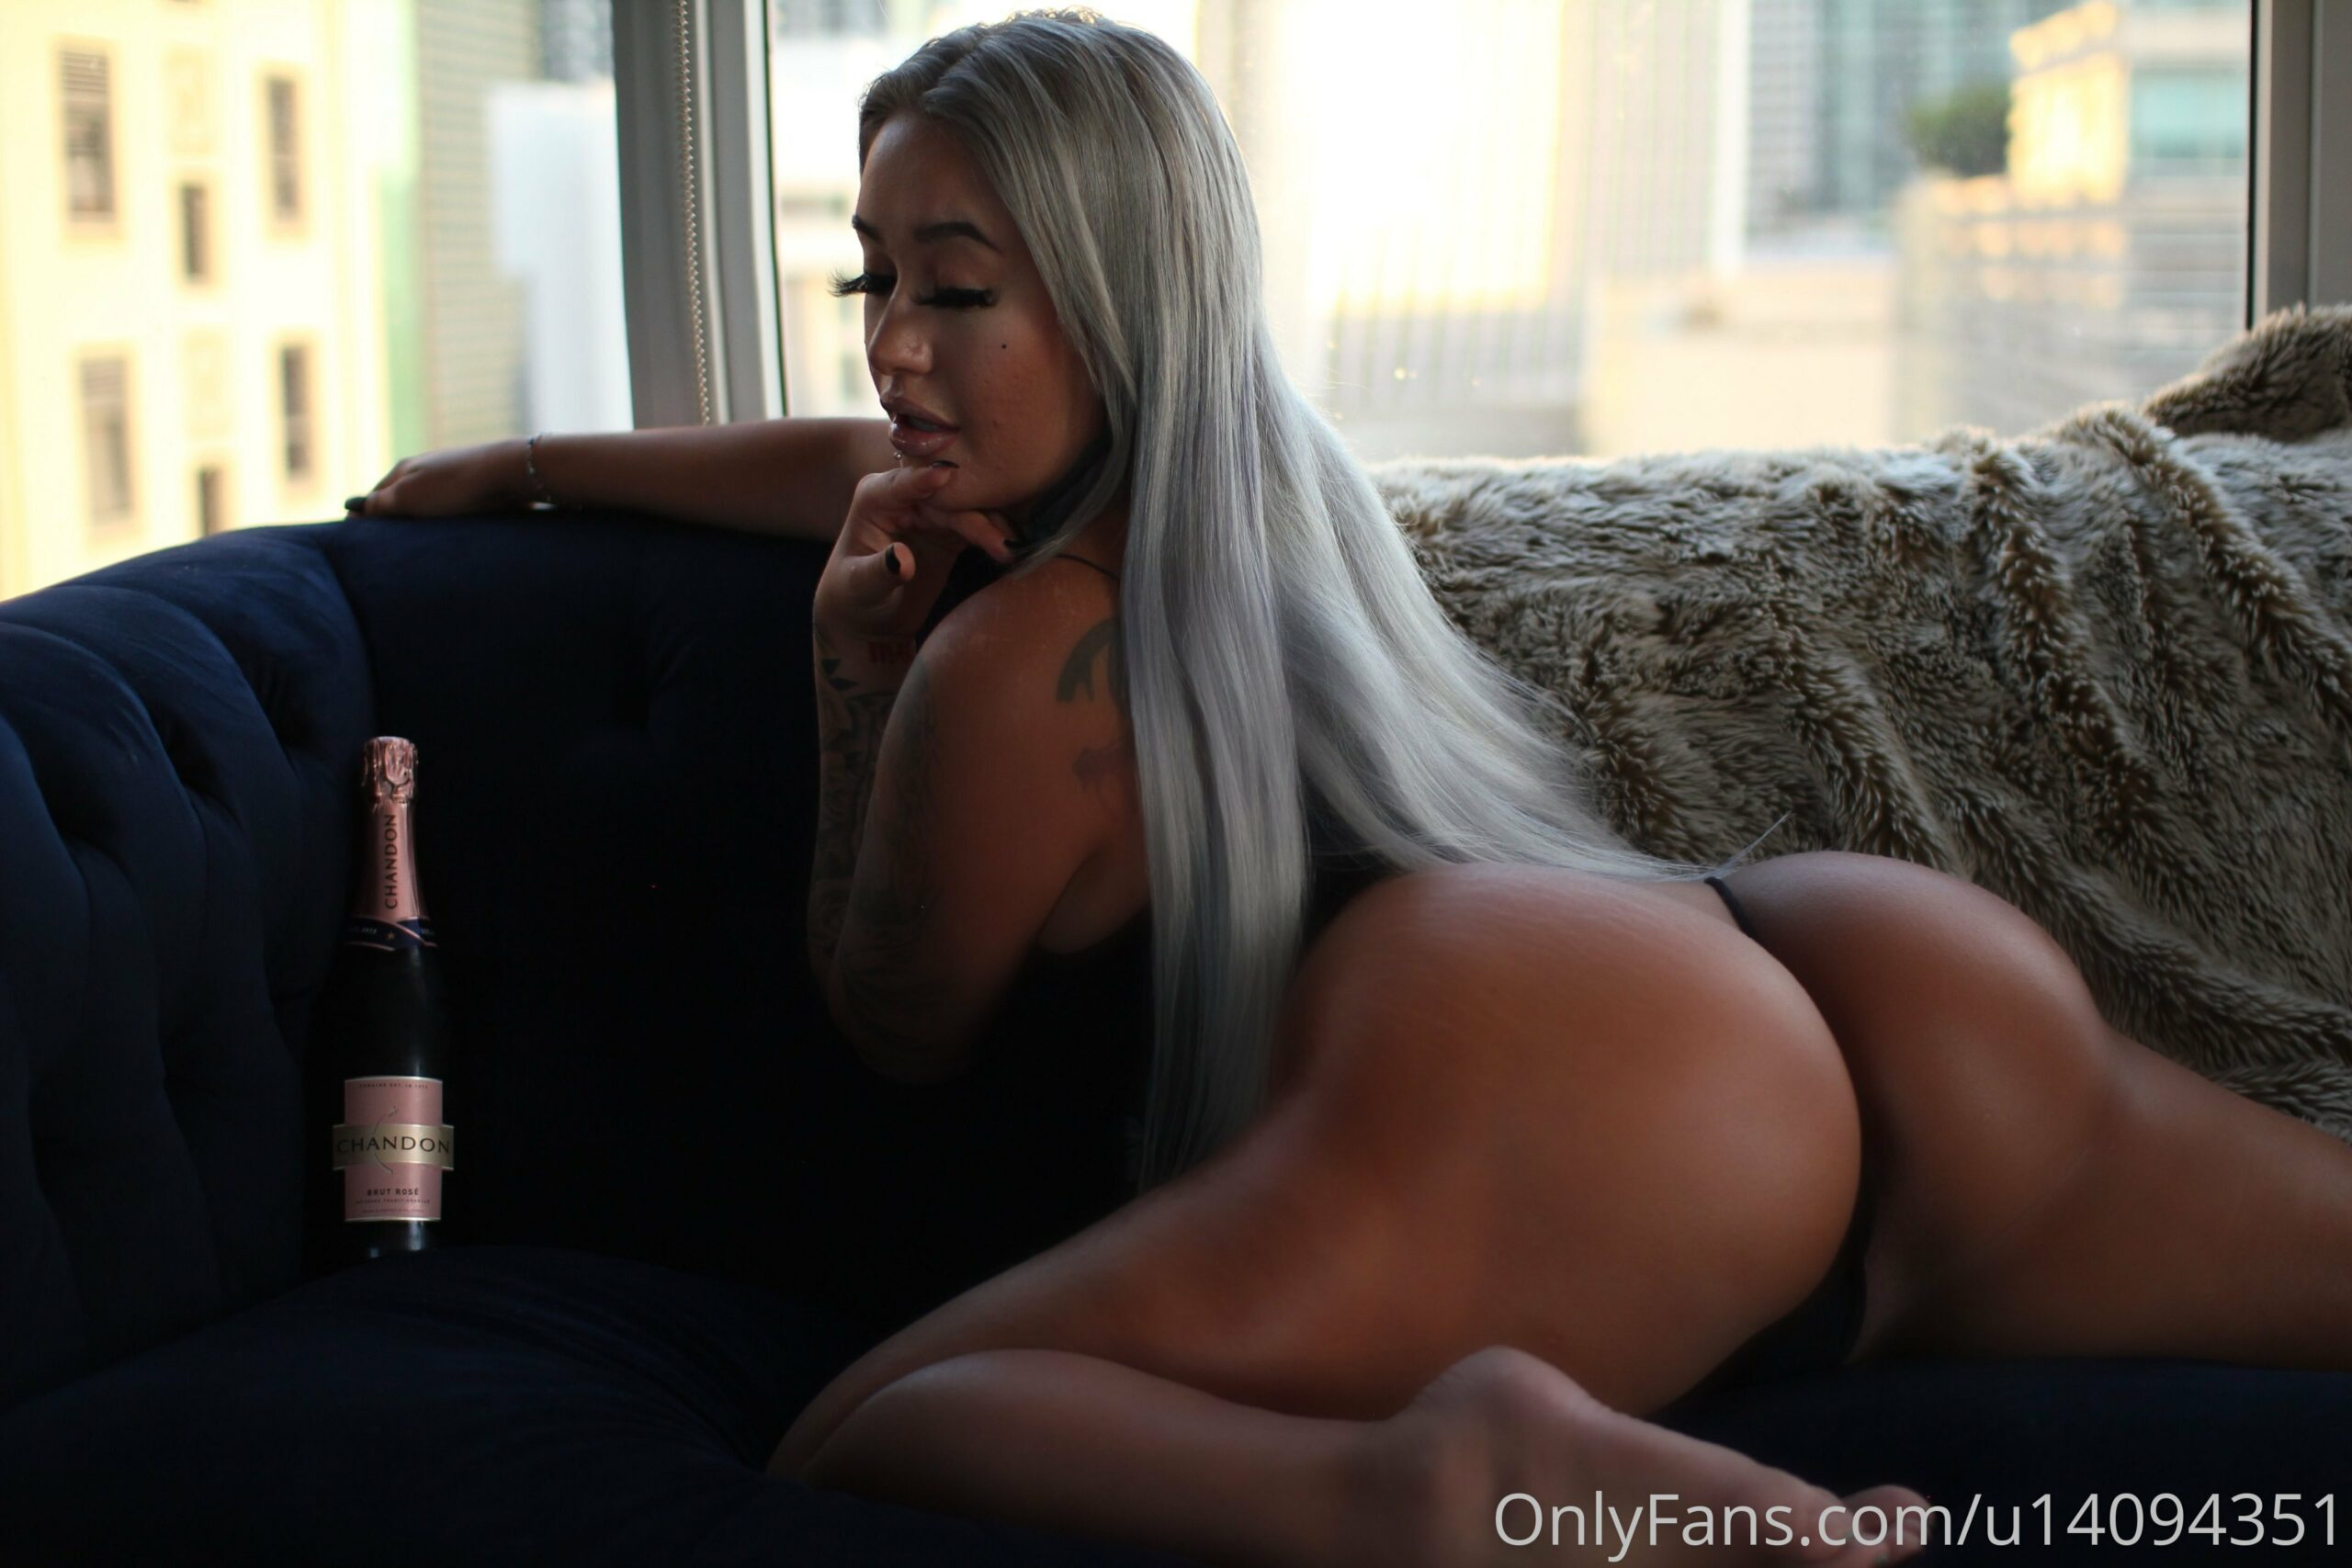 Russian Cream Porn OnlyFans Leaked Nudes 58